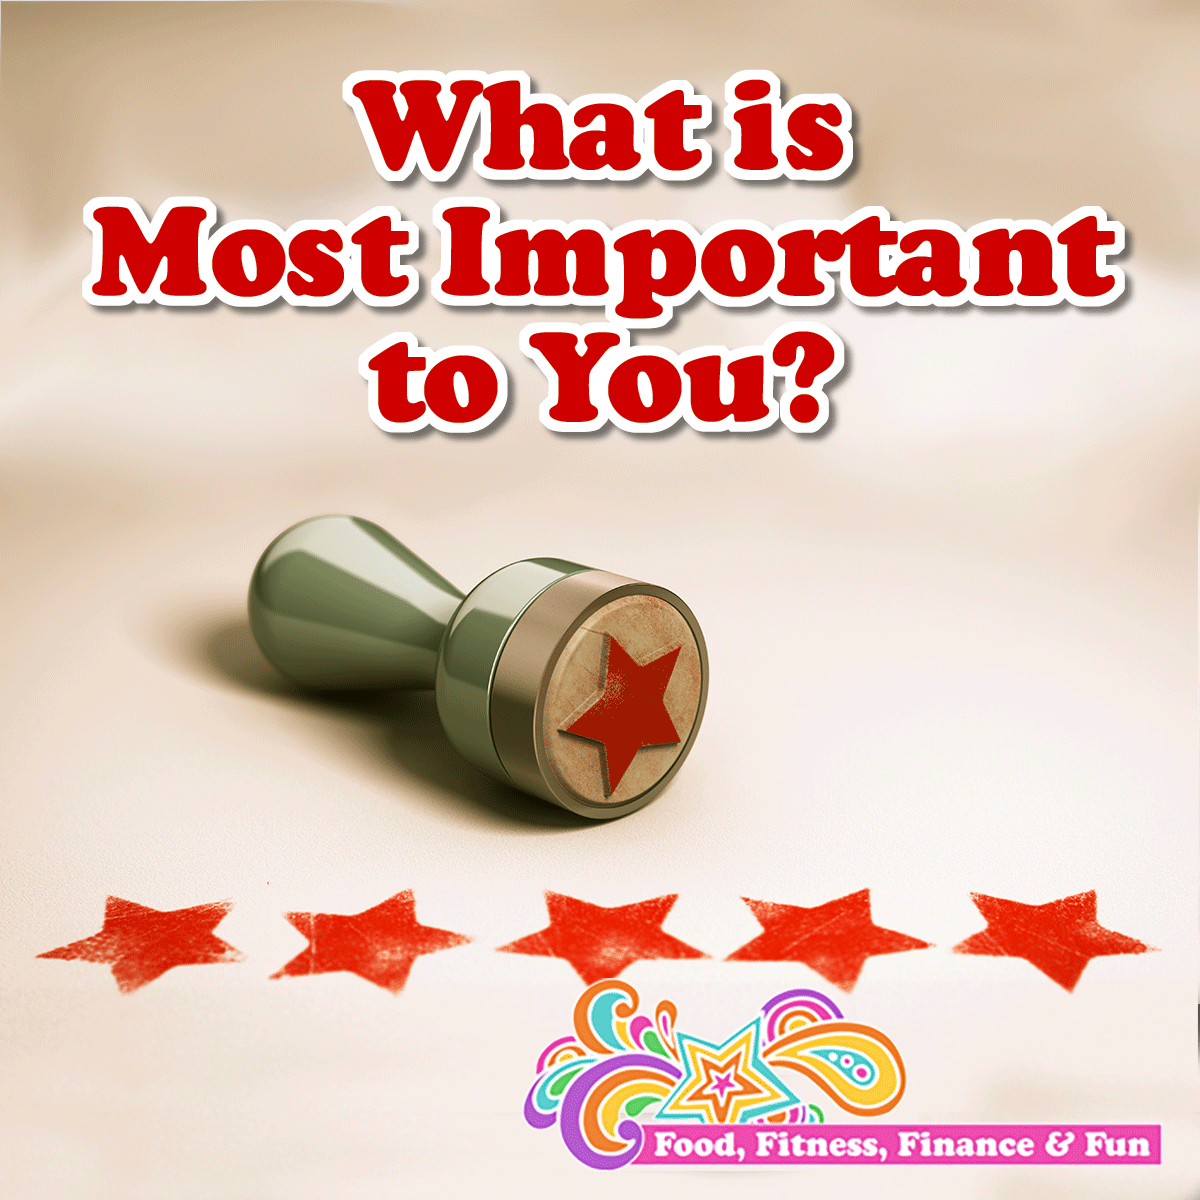 What is Most Important to You?